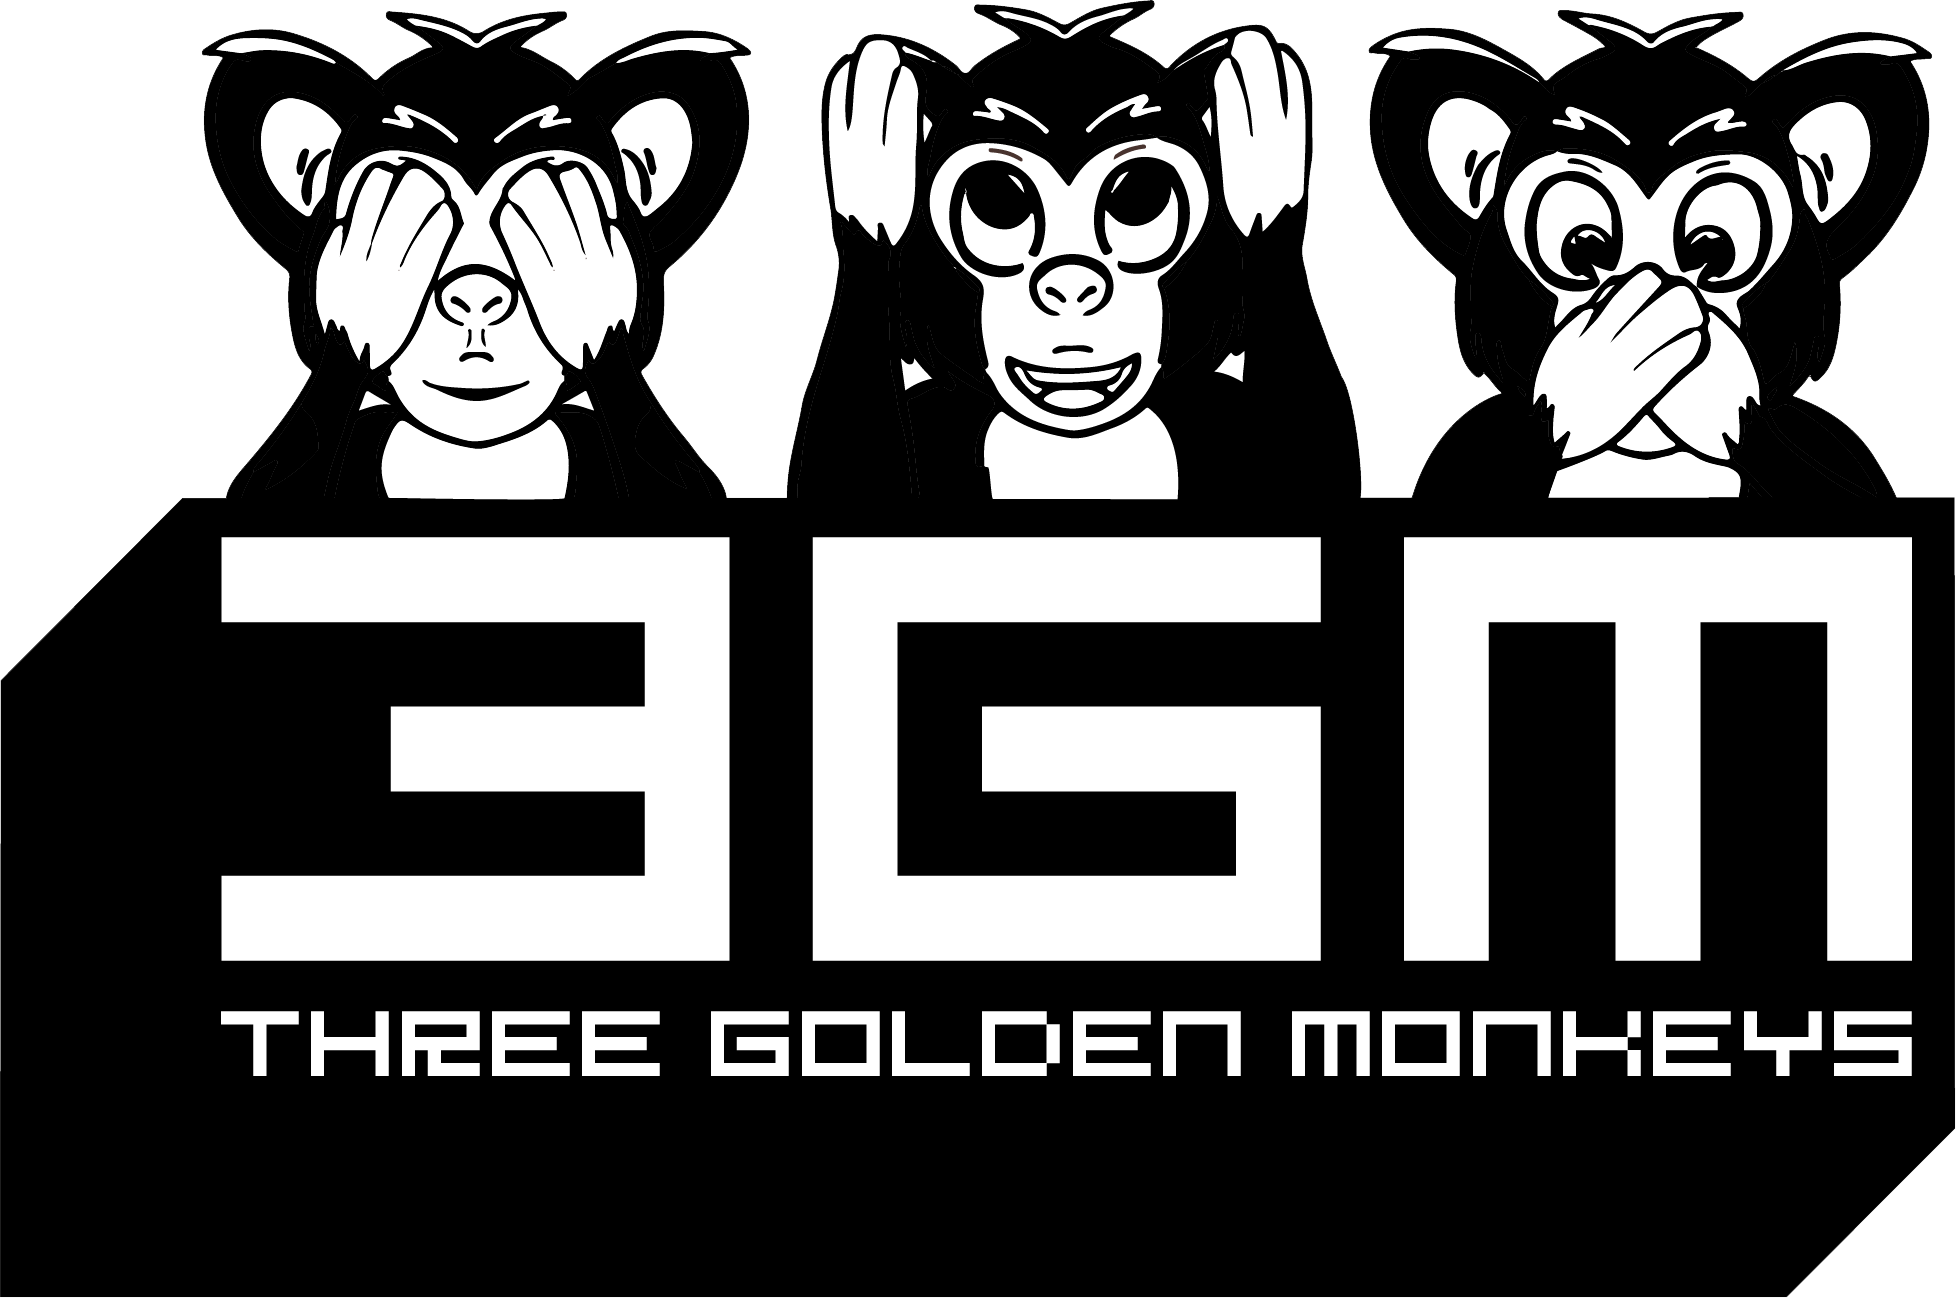 ASMR2 - Three Golden Monkeys Lab